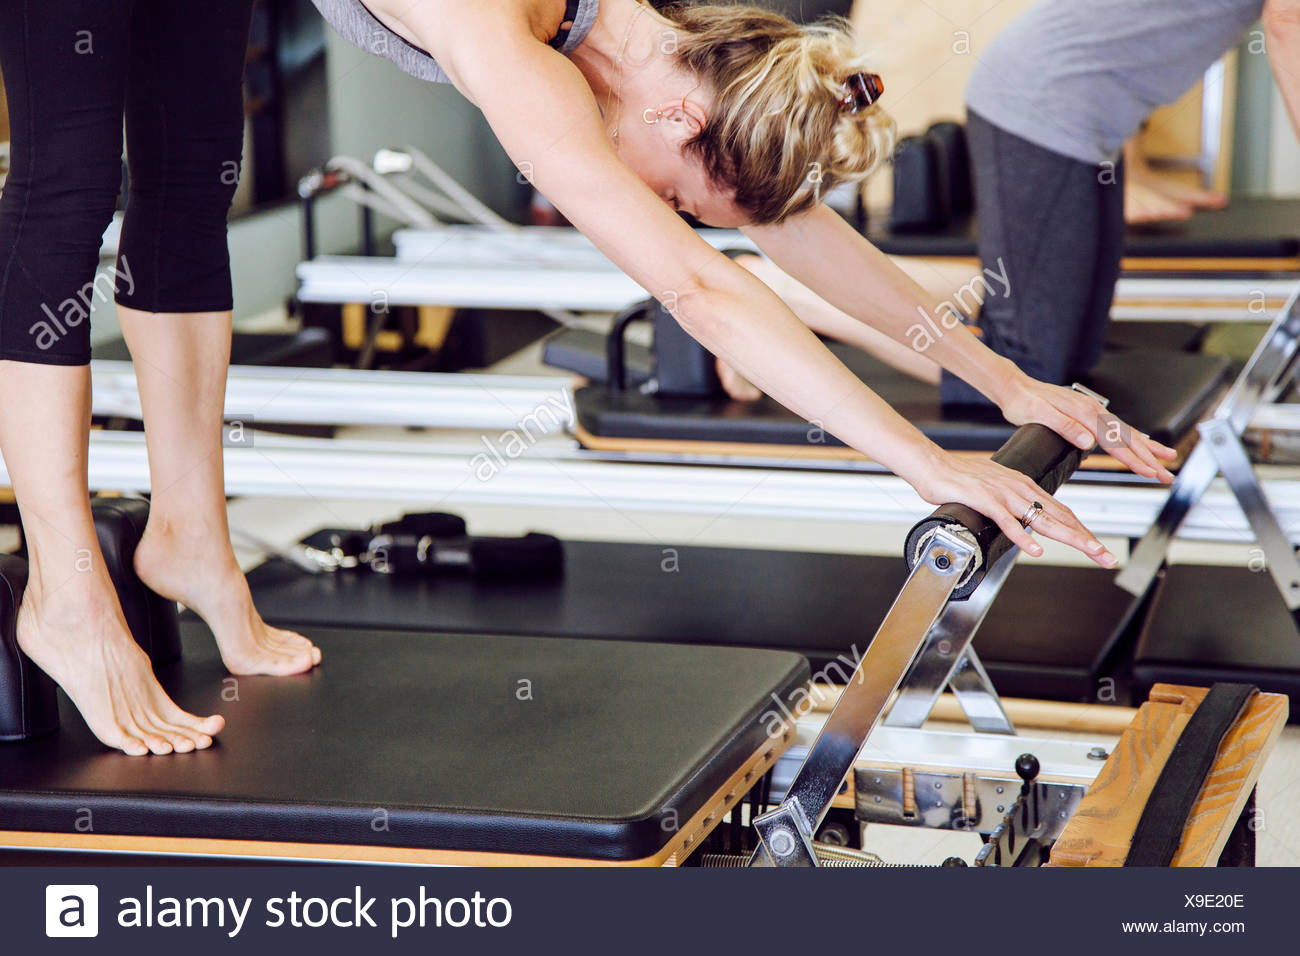 Women in gym using pilates reformer - Stock Image